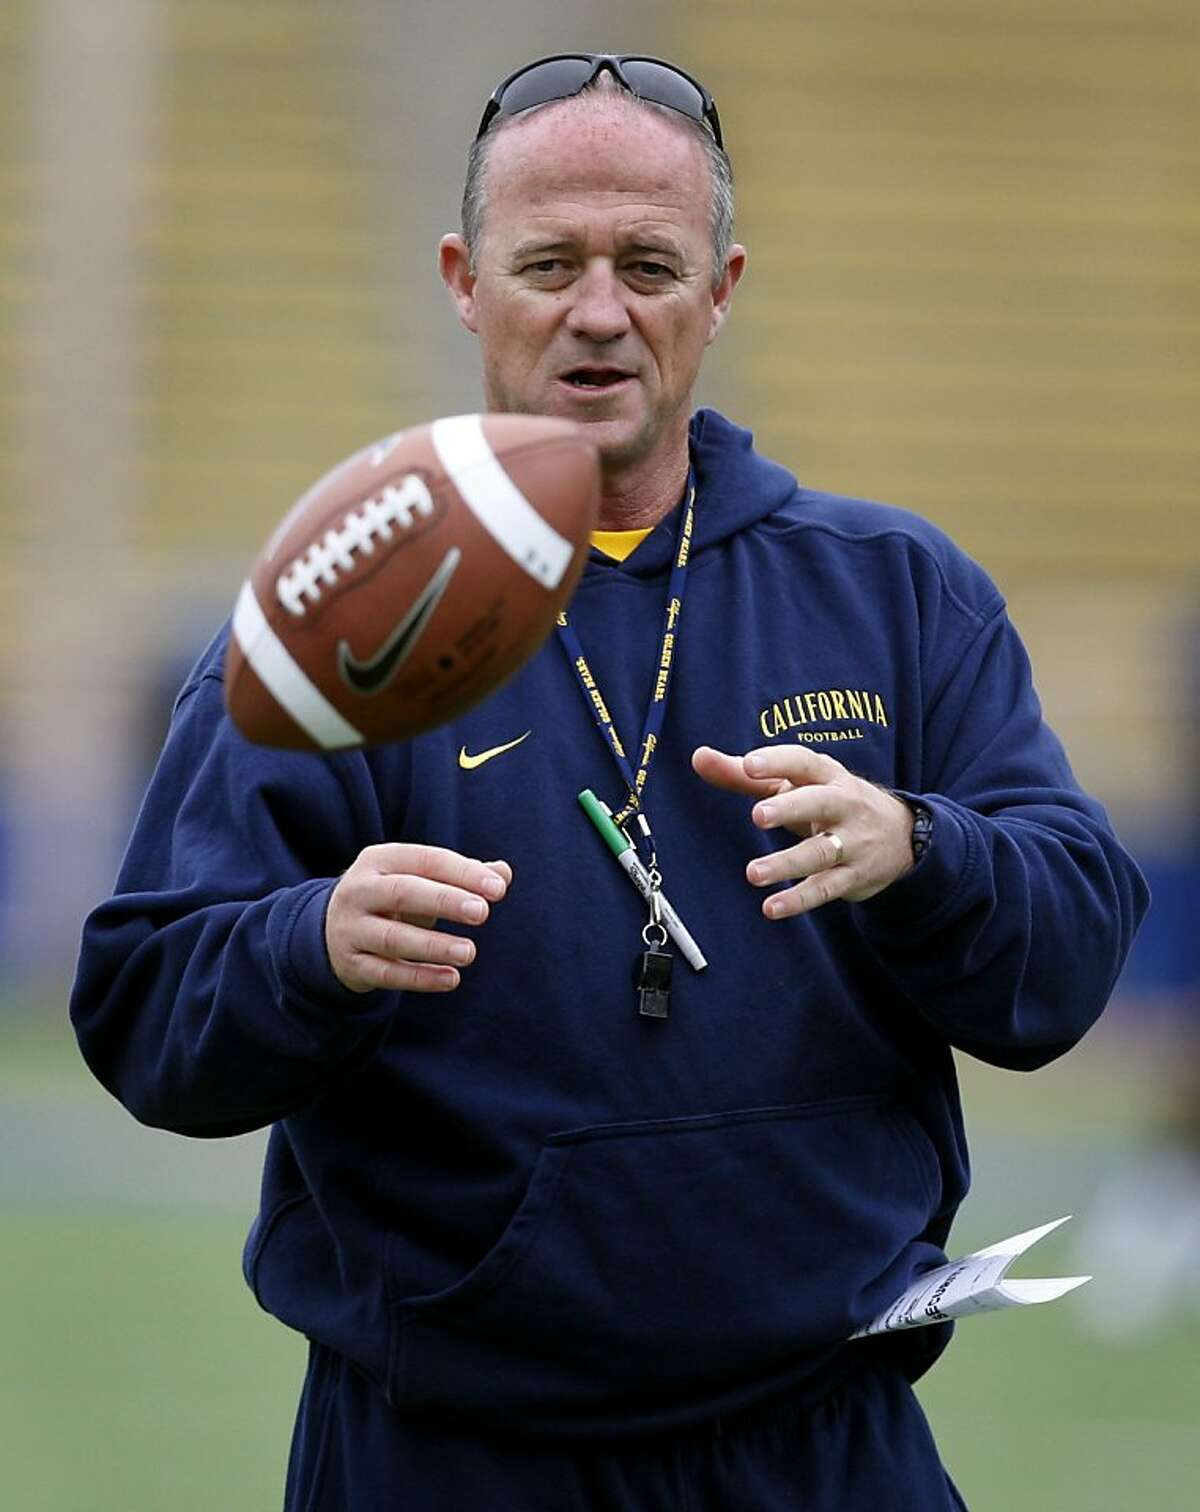 Head coach Jeff Tedford supervises the Cal Bears football practice at Memorial Stadium in Berkeley, Calif. on Friday, Aug. 27, 2010.